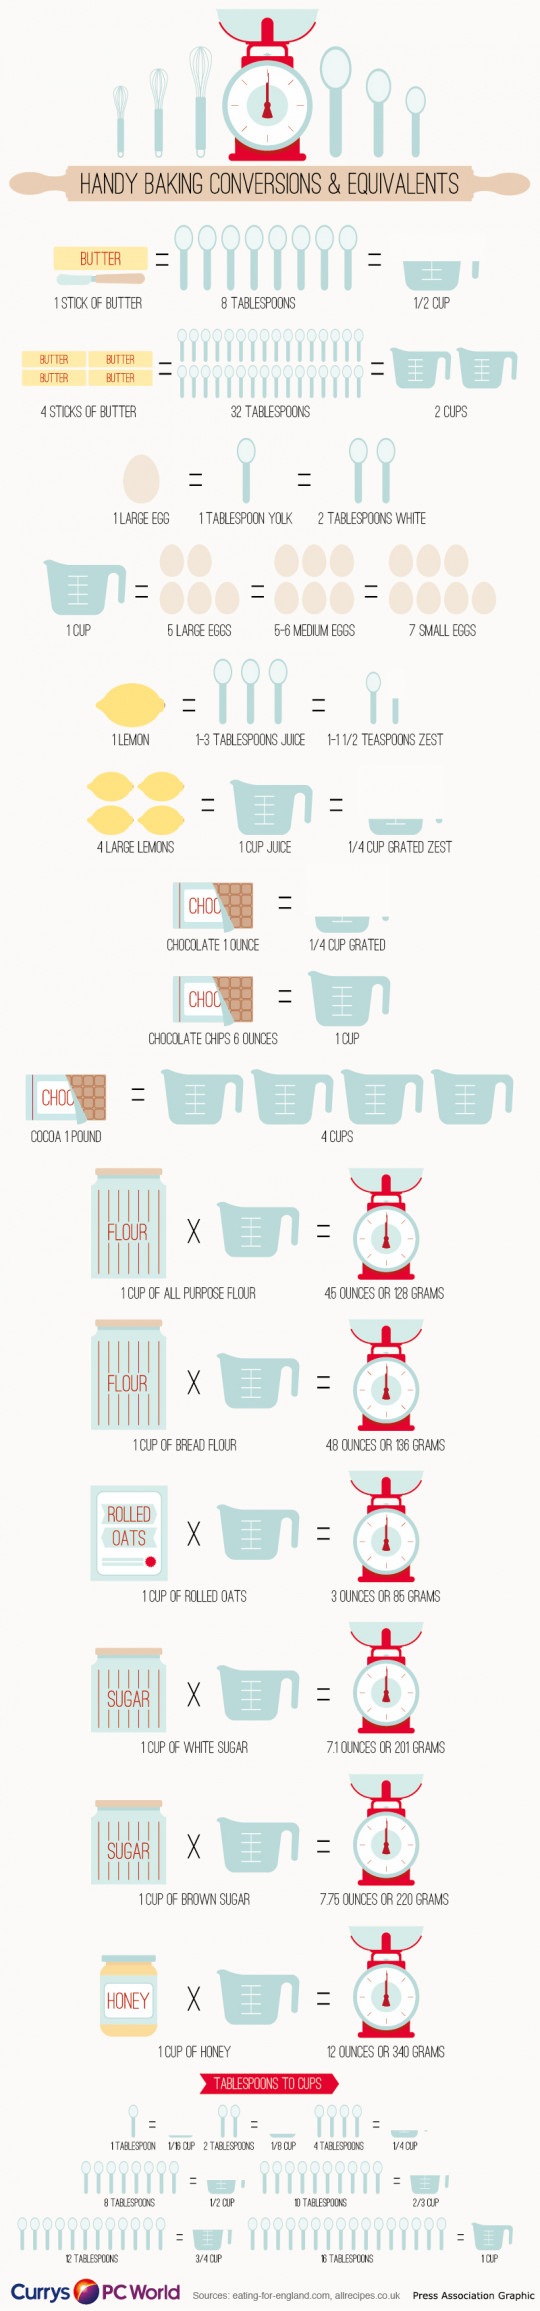 Handy Baking Conversions & Equivalents